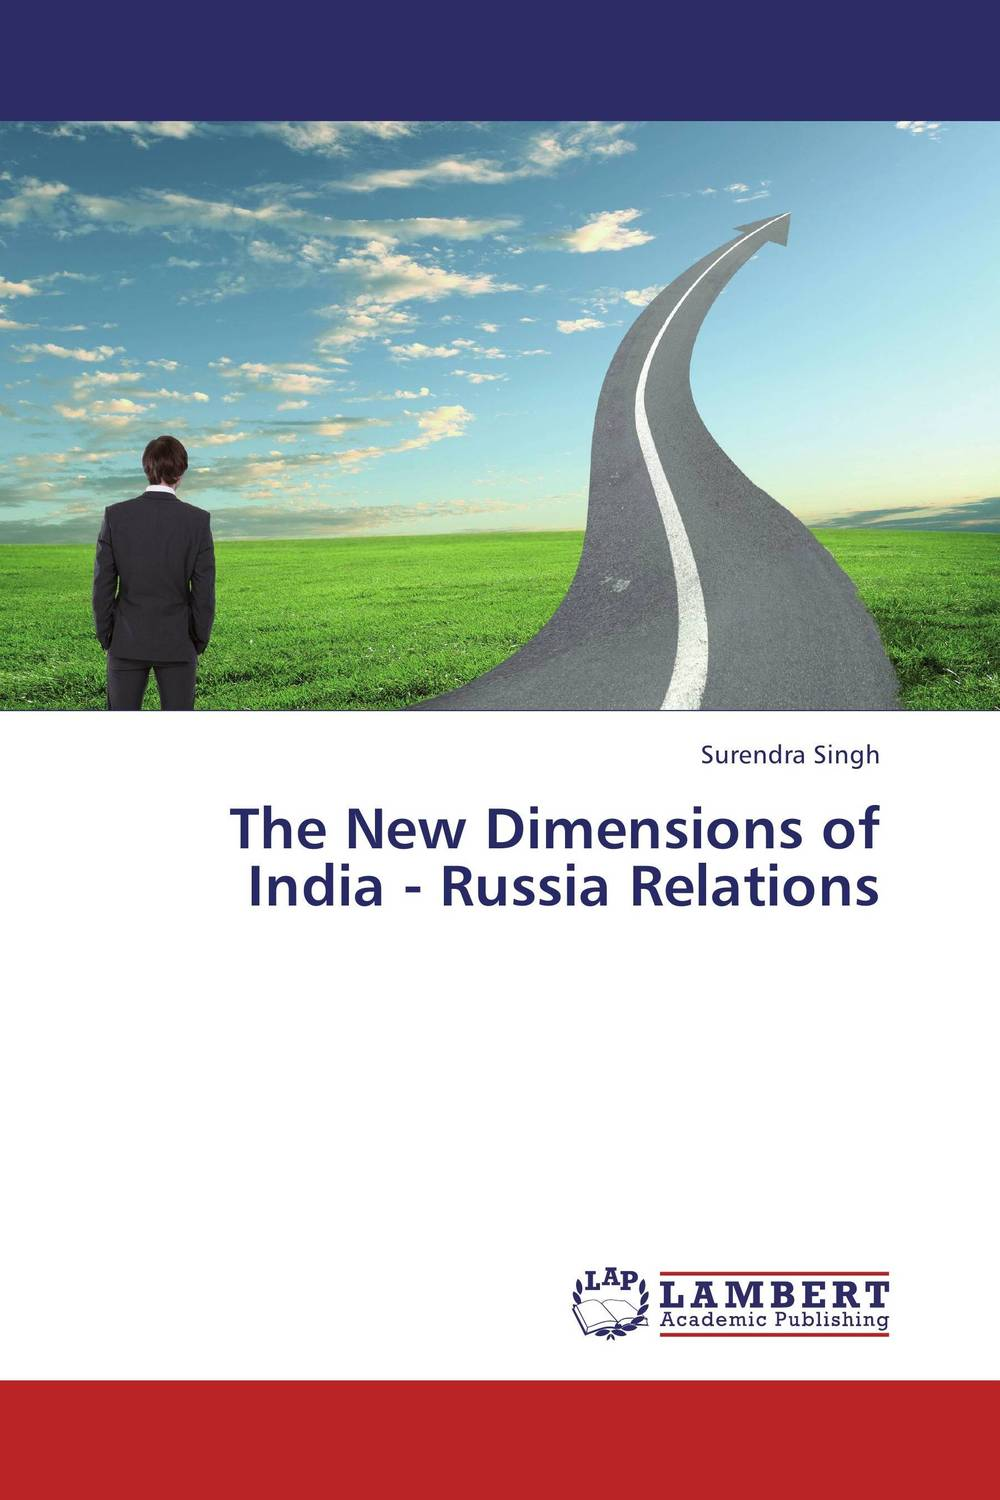 The New Dimensions of India - Russia Relations global powers in the 21st century – strategy and relations